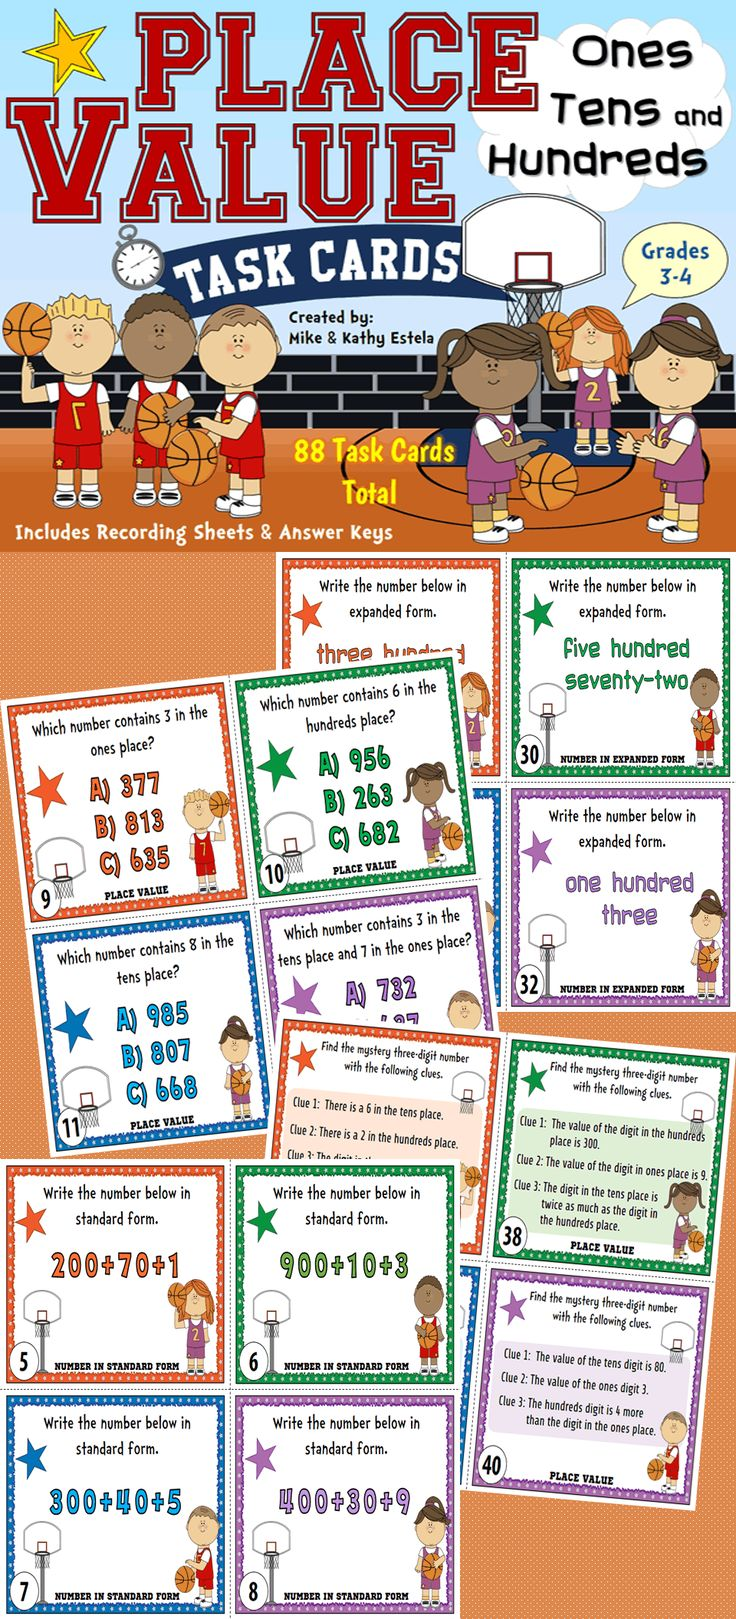 Place Value Task Cards {Ones, Tens, and Hundreds}. Contains 2 sets of task cards - 88 Task Cards total! $